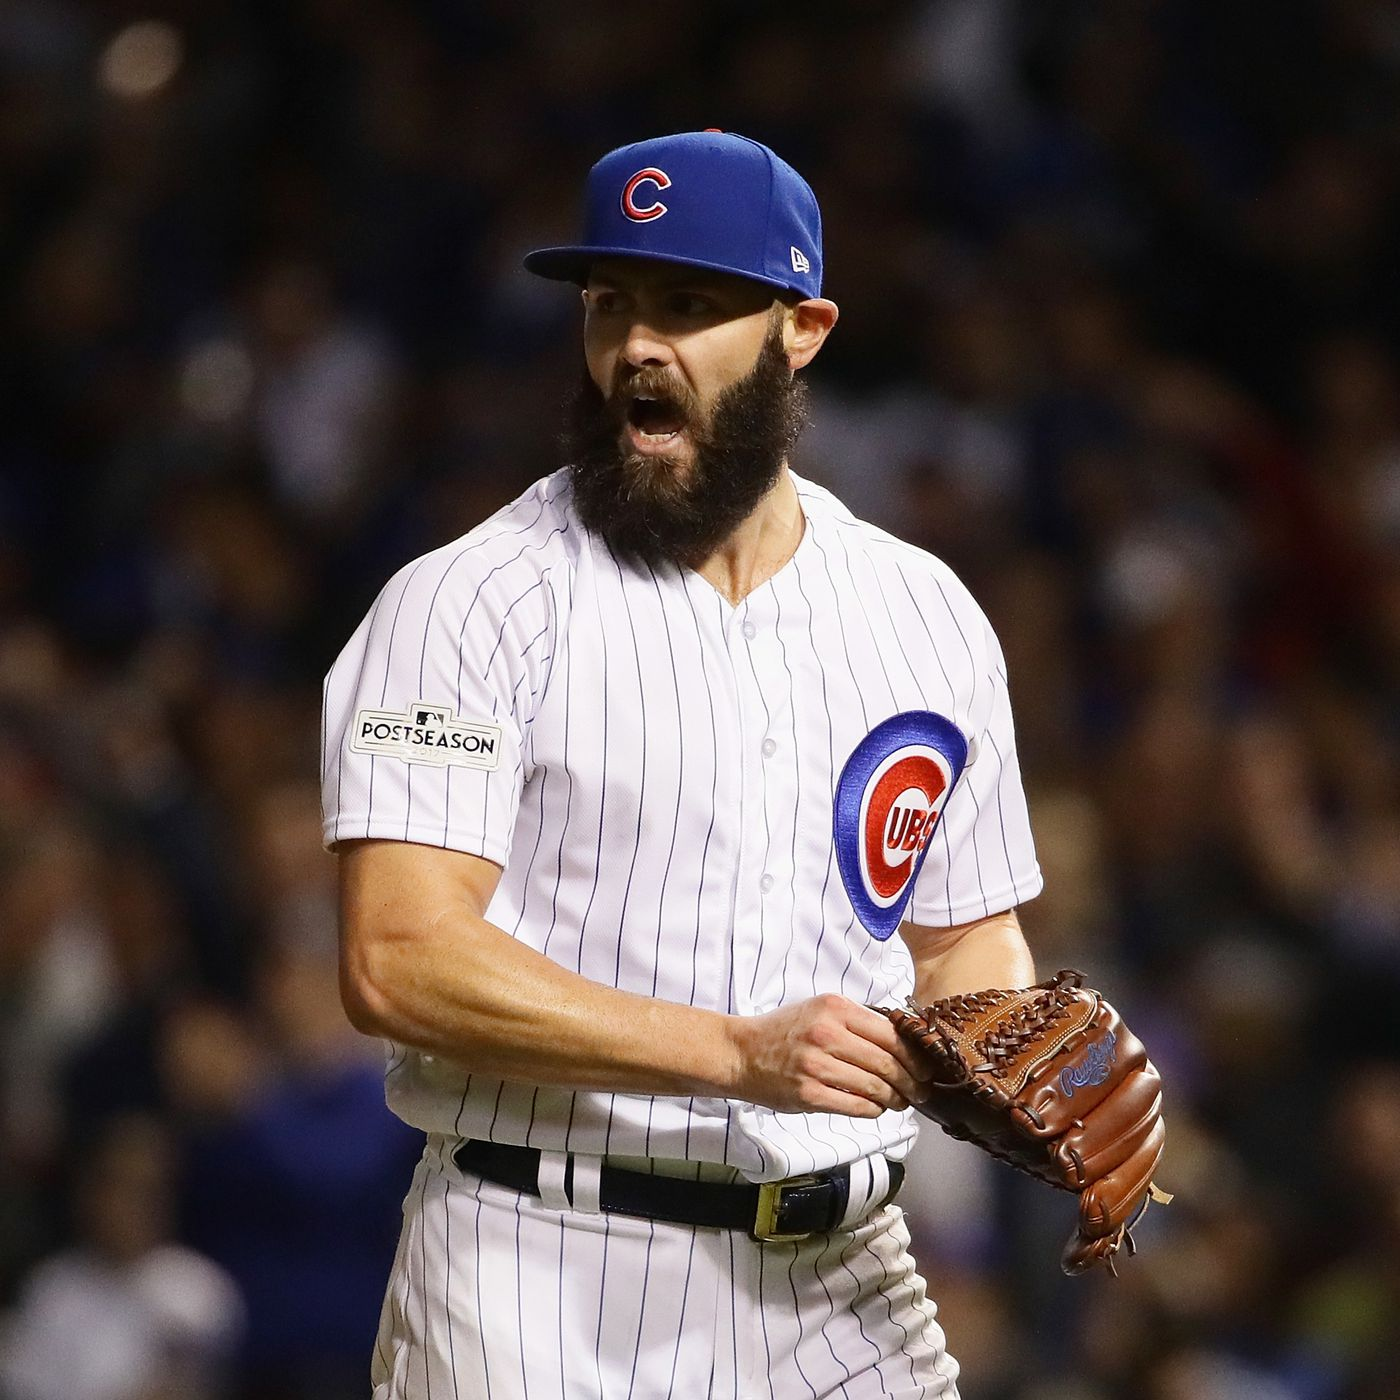 Cubs spring training: What does Jake Arrieta add? - Chicago Sun-Times